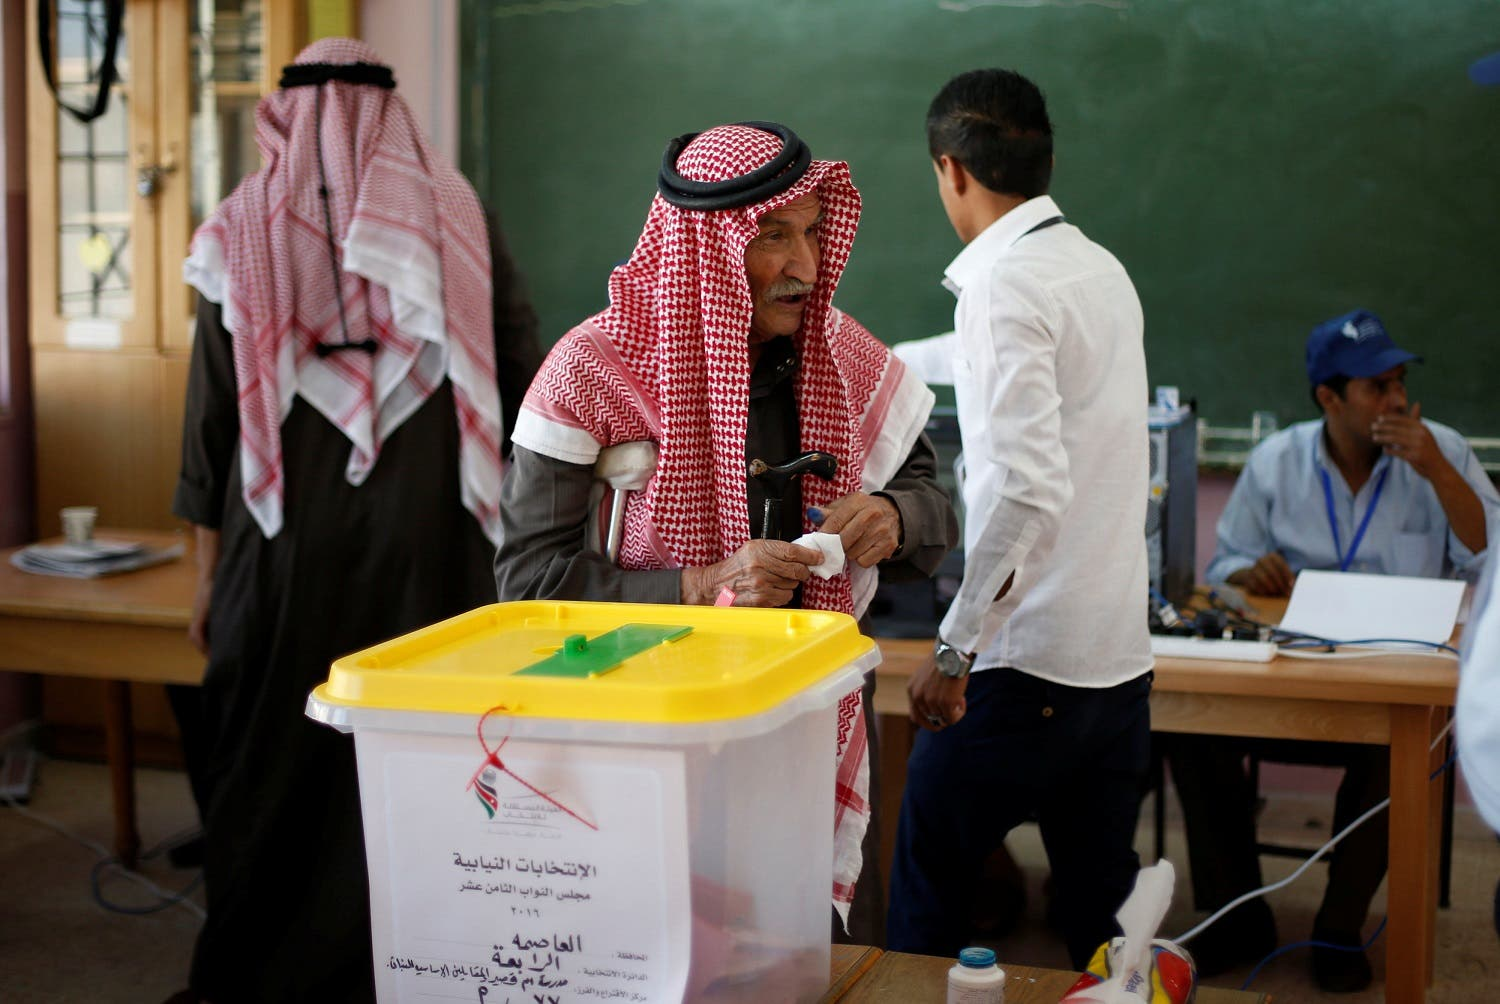 A man casts his ballot at a polling station for parliamentary elections in Amman. (Reuters)